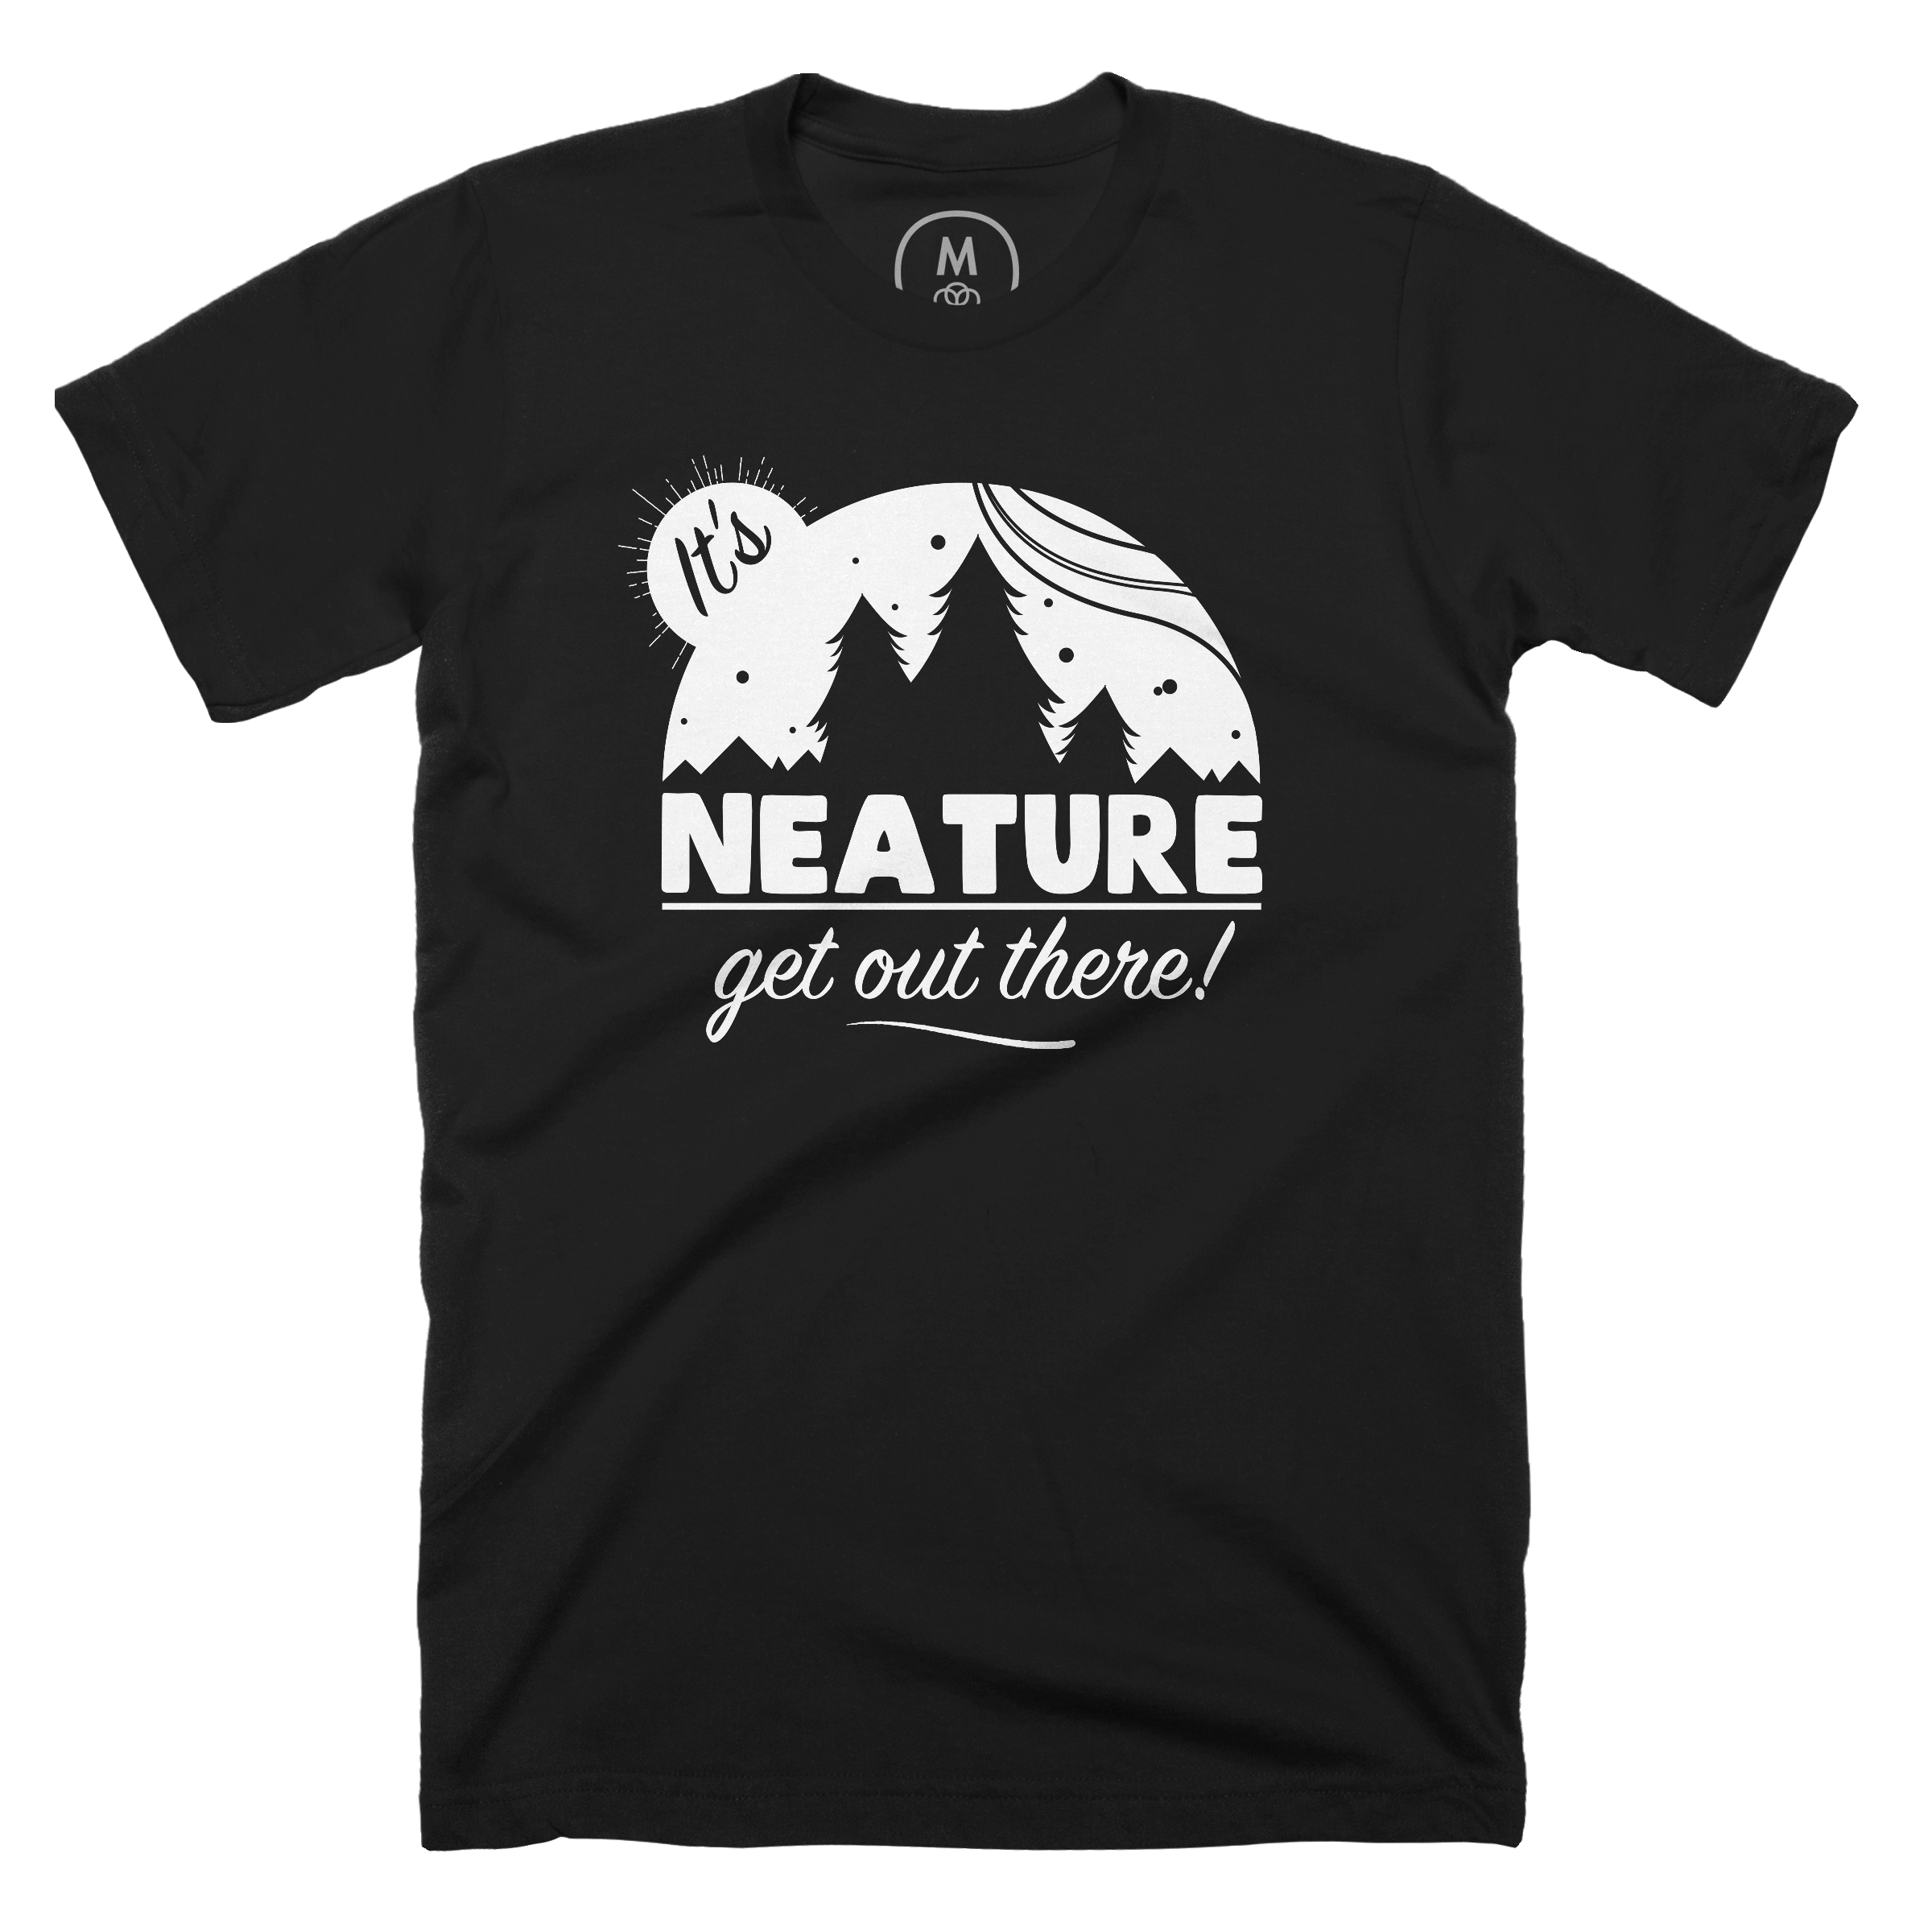 IT'S NEATURE